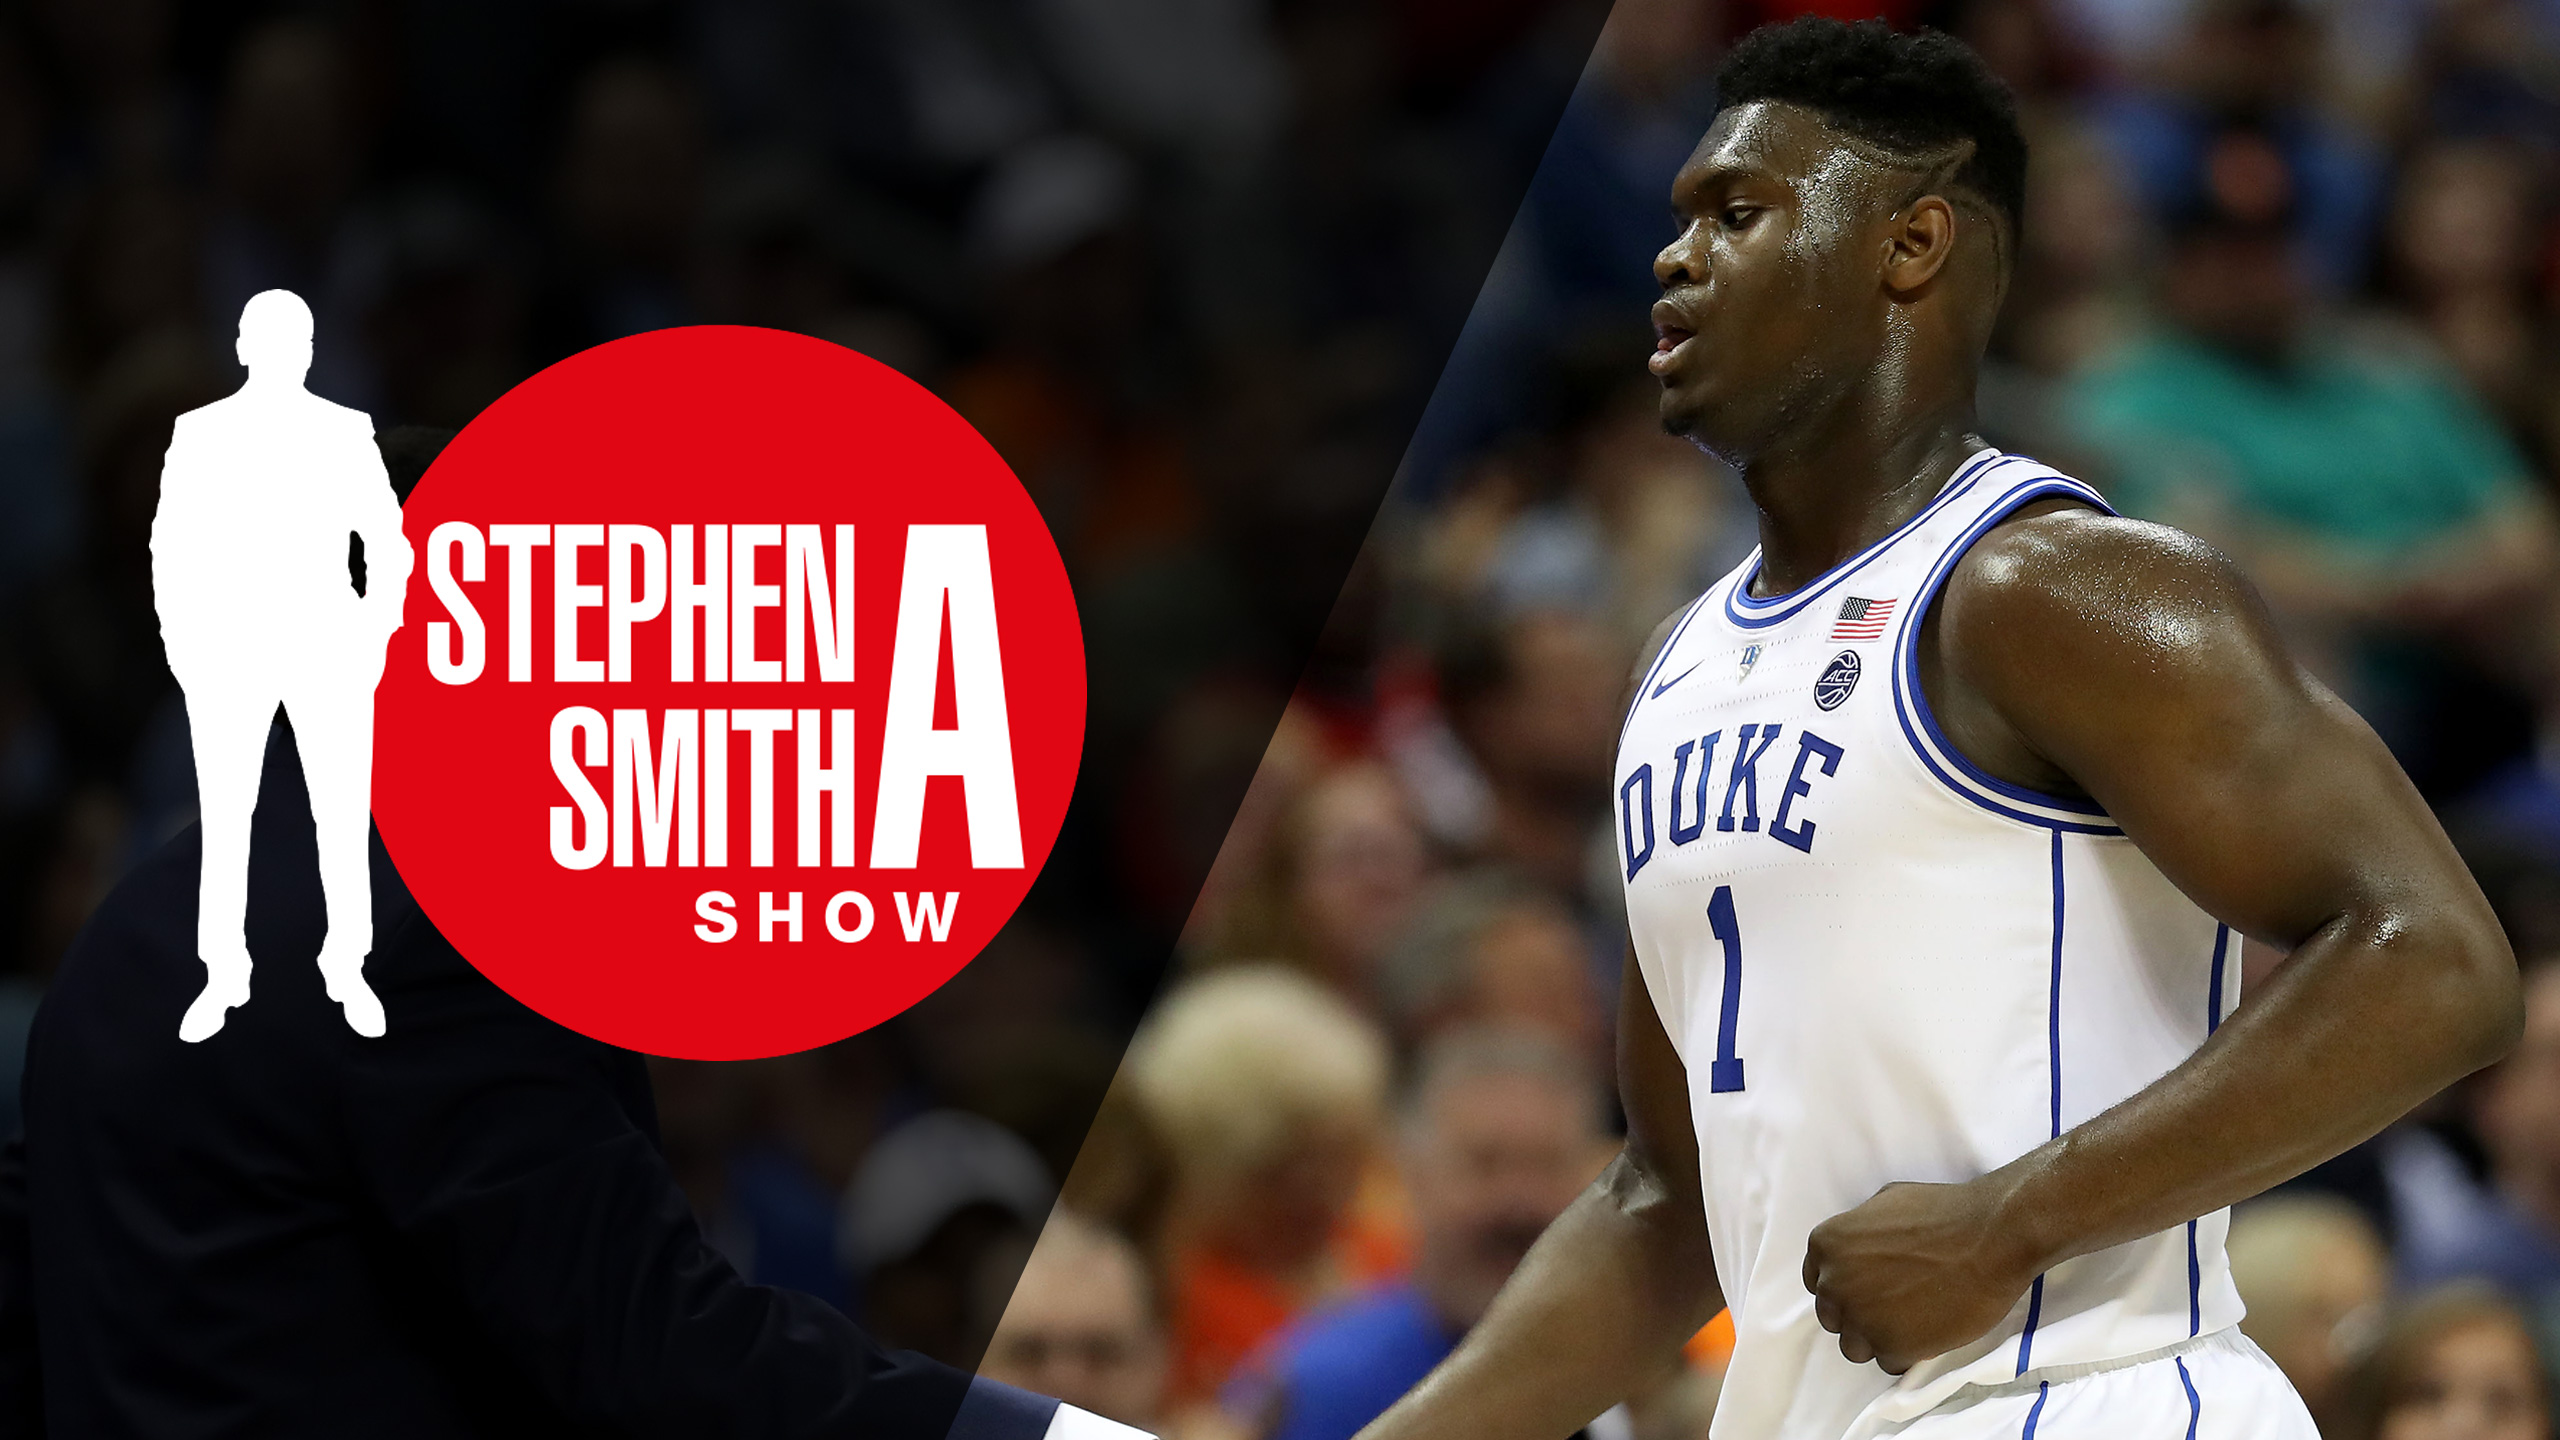 Fri, 3/15 - The Stephen A. Smith Show Presented by Progressive